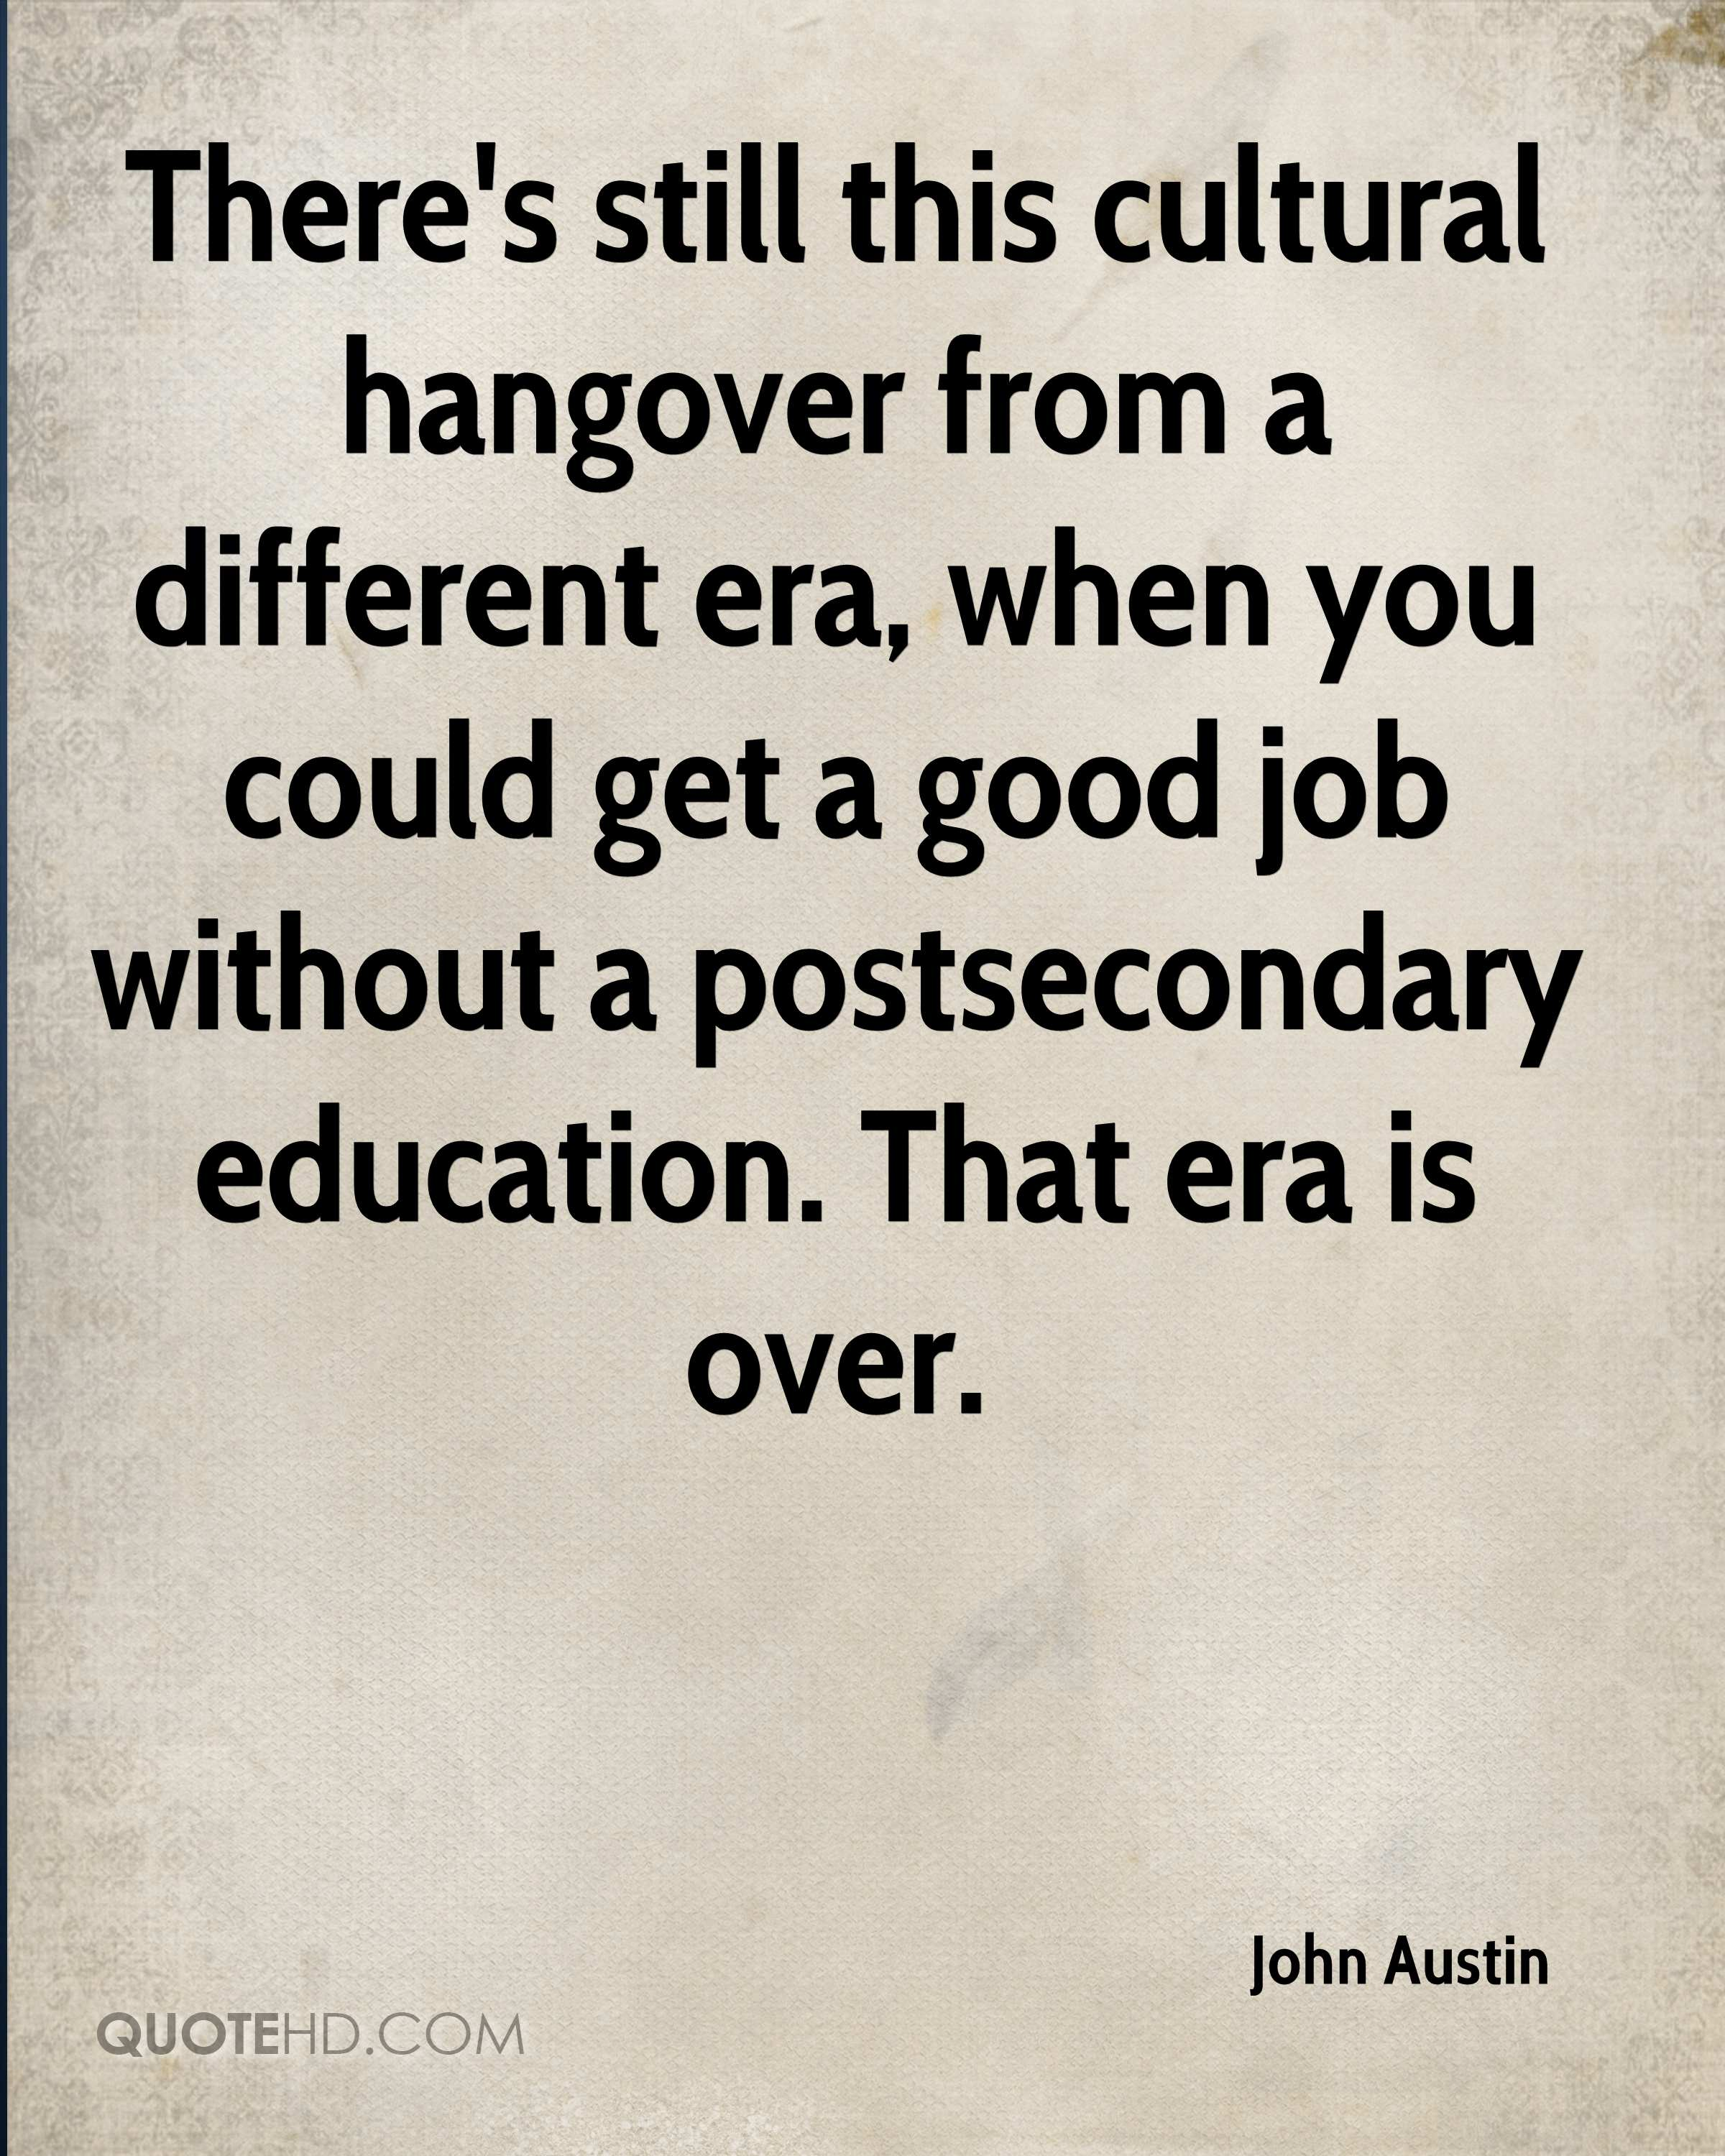 There's still this cultural hangover from a different era, when you could get a good job without a postsecondary education. That era is over.